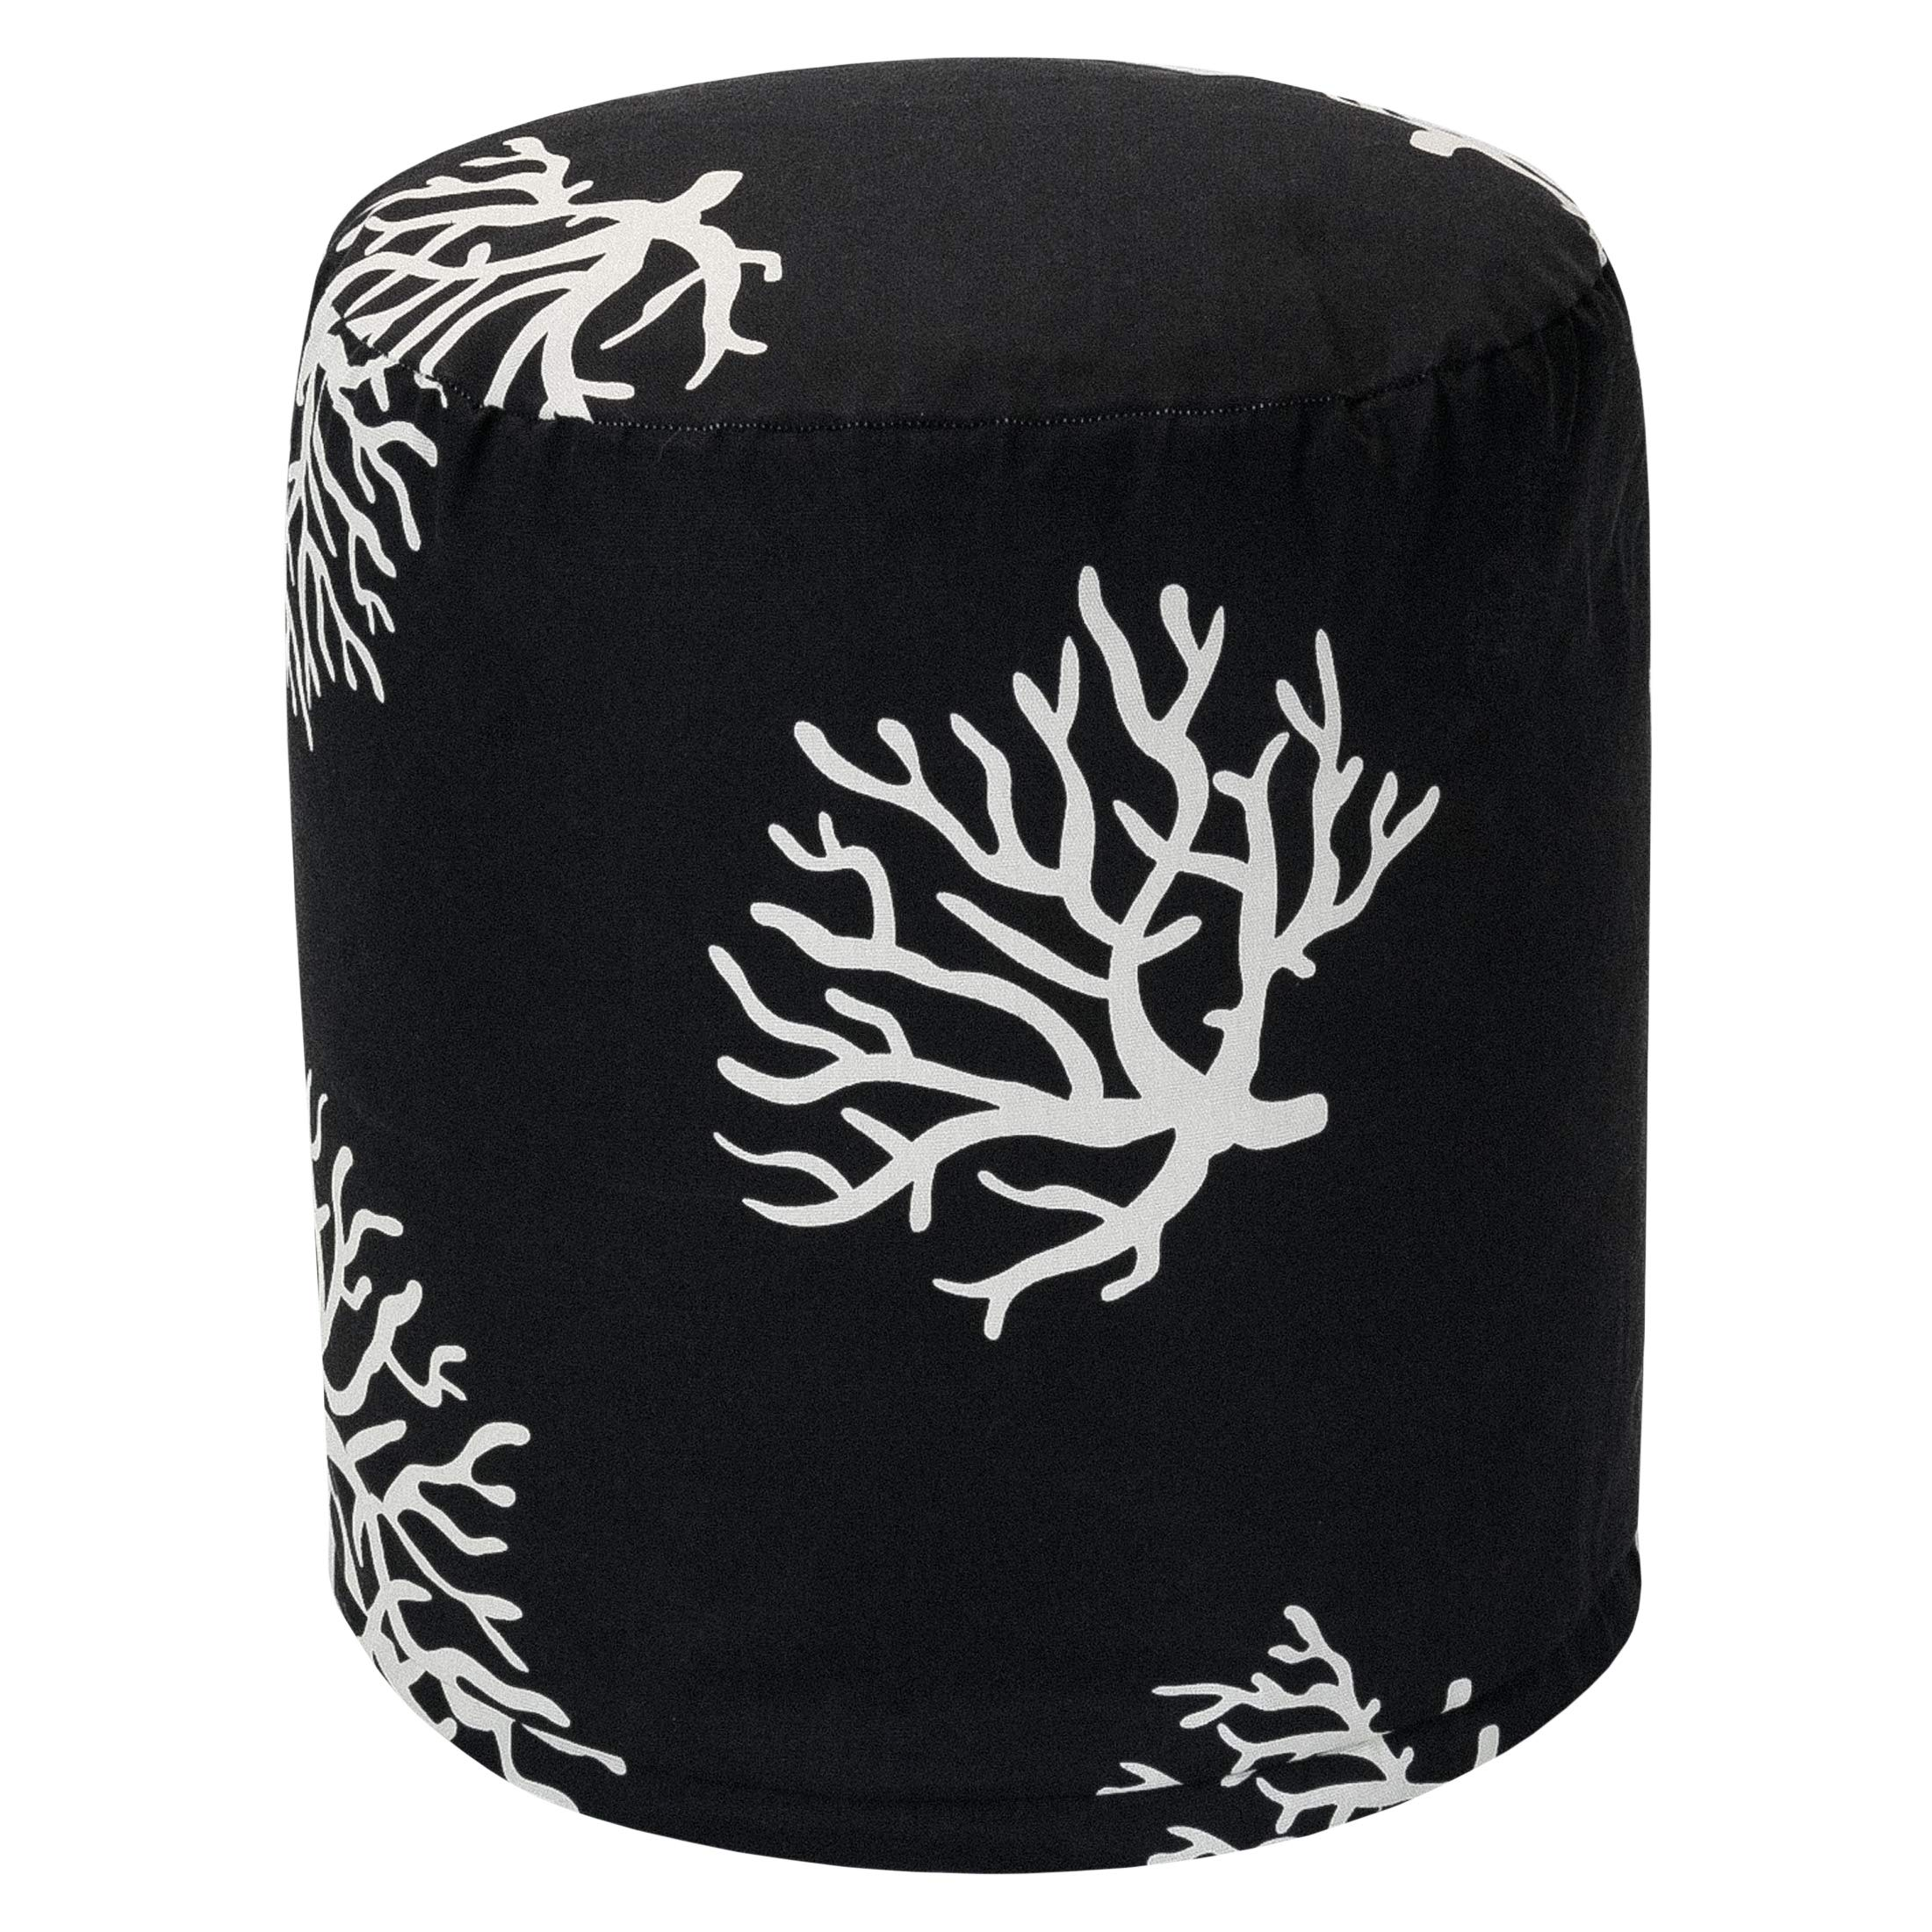 Majestic Home Goods Black Coral Indoor/Outdoor Bean Bag Ottoman Pouf 16'' L x 16'' W x 17'' H